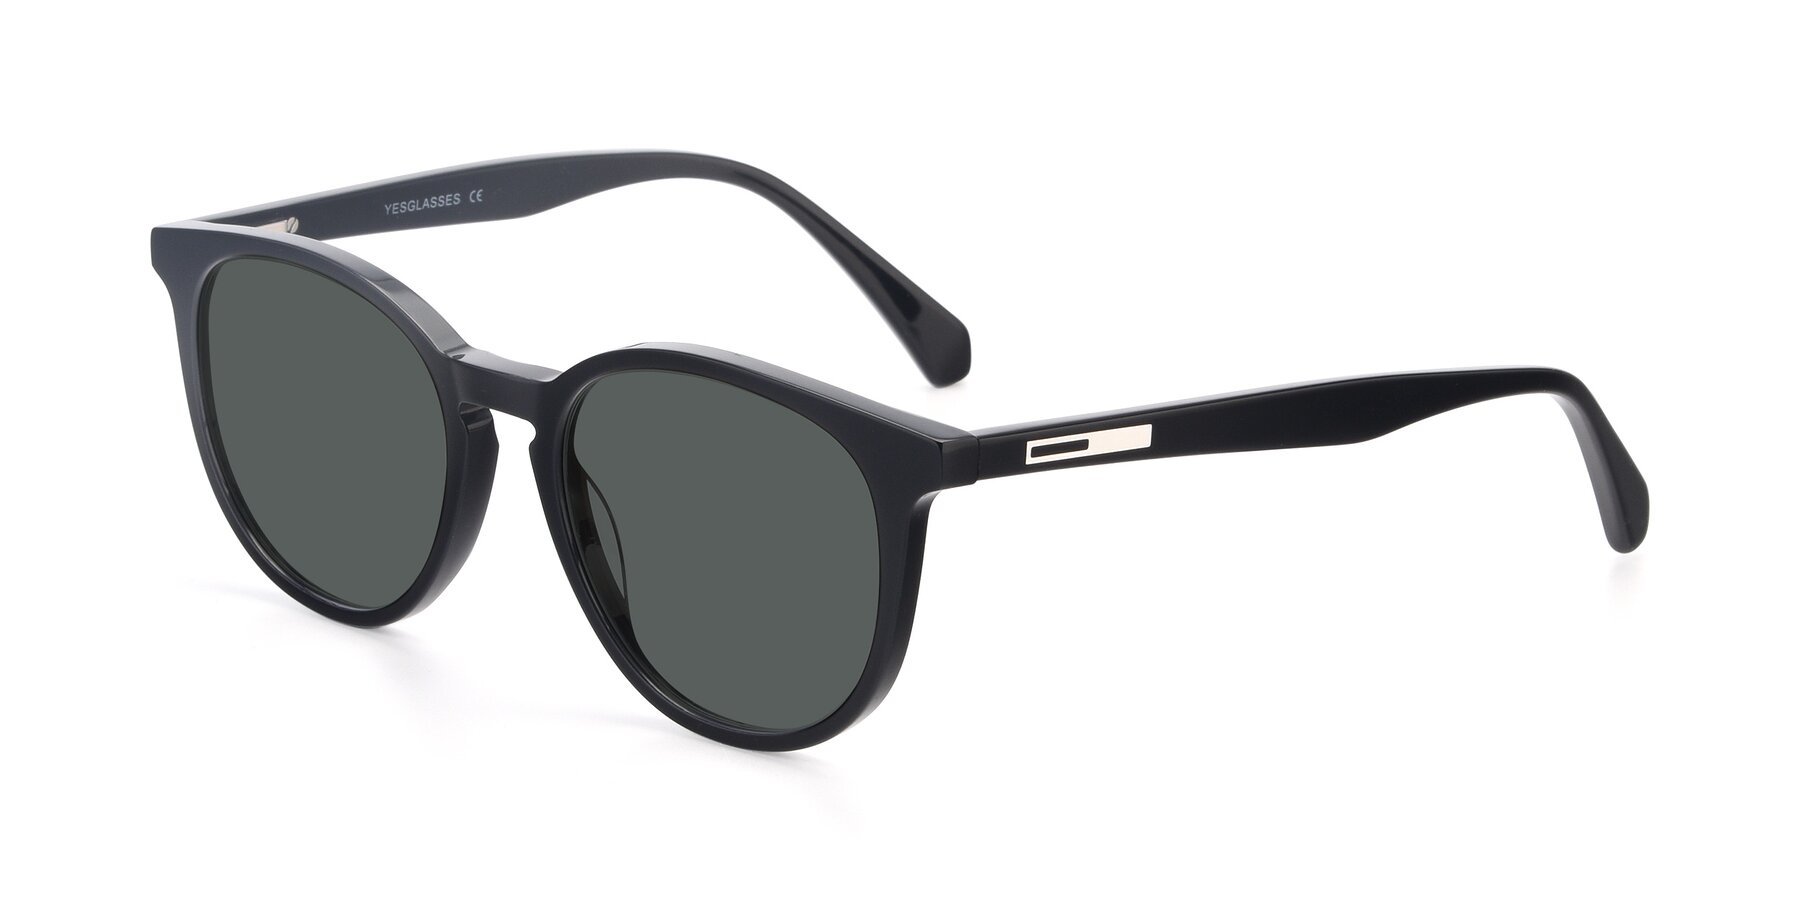 Angle of 17721 in Black with Gray Polarized Lenses